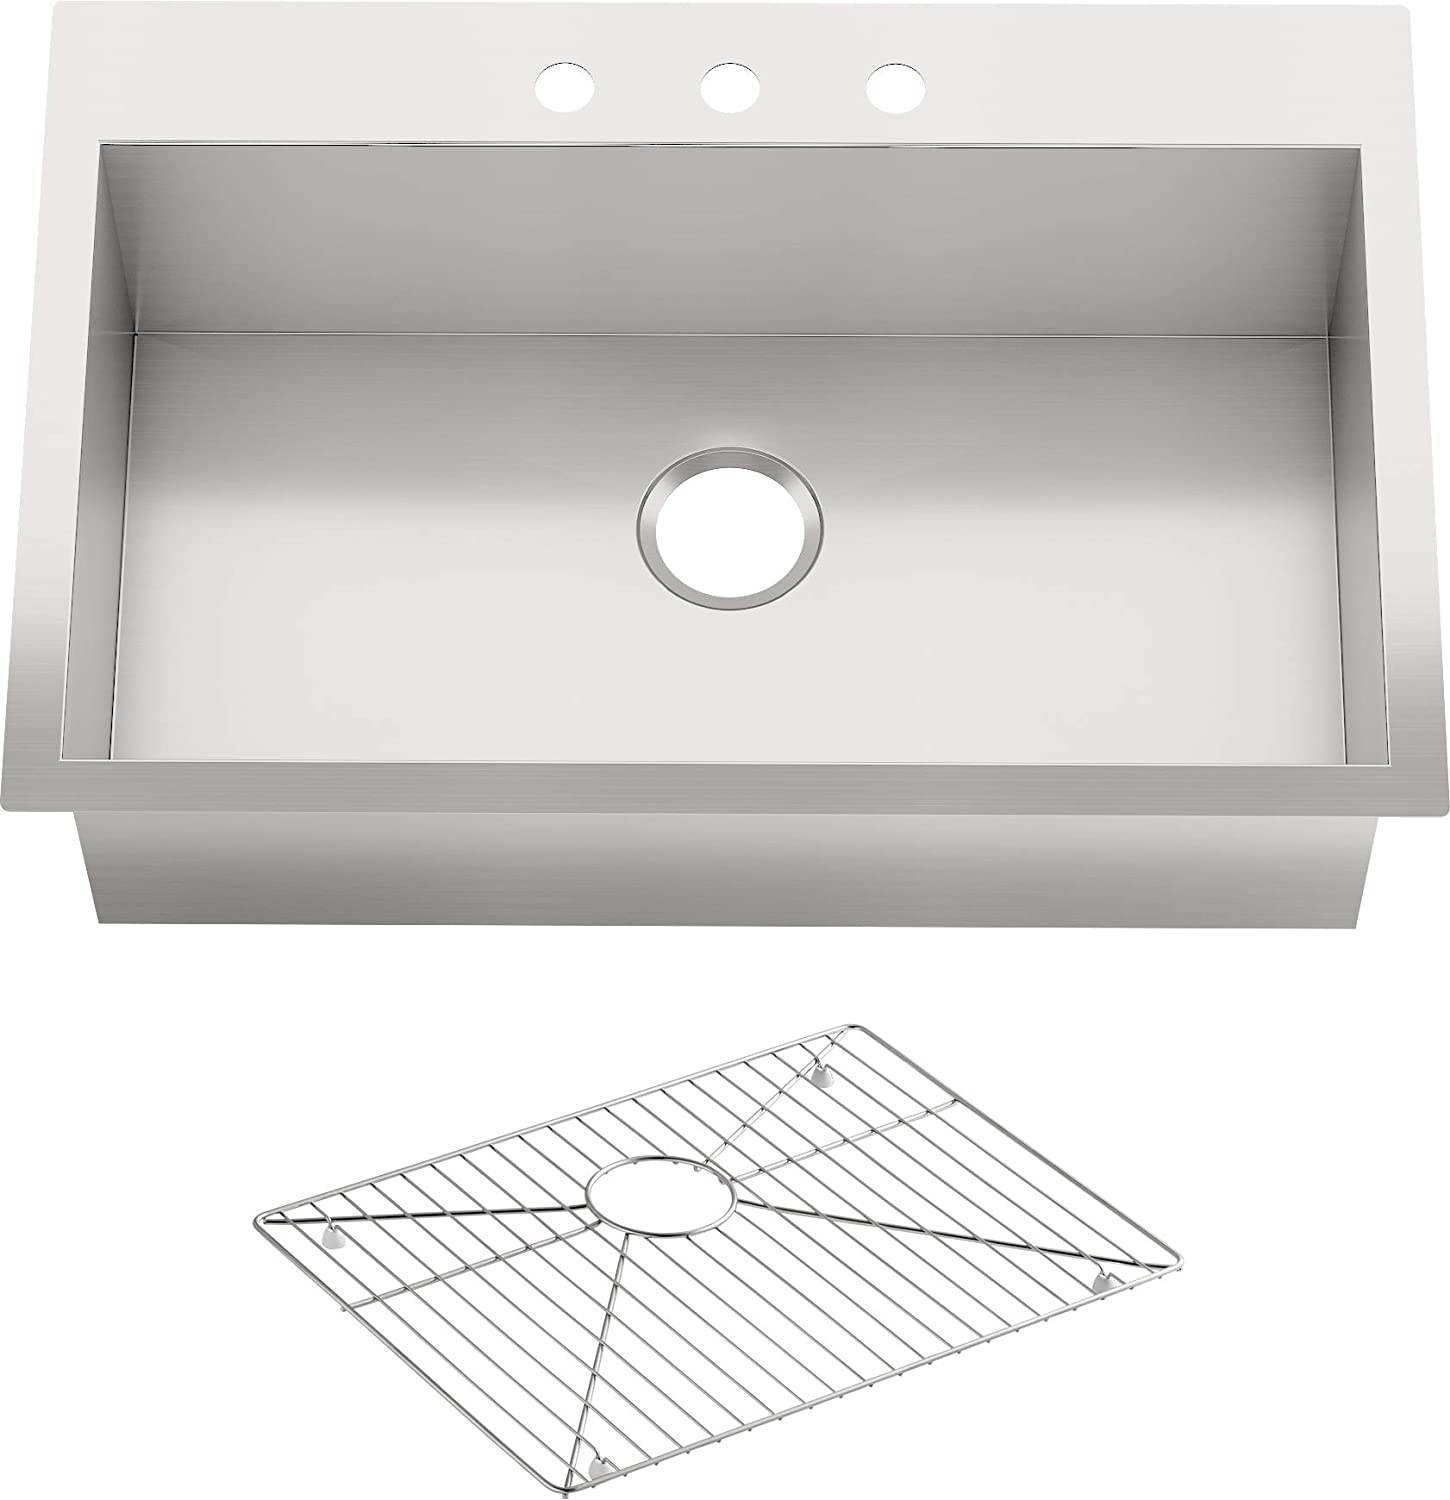 KOHLER Vault 33 Single Bowl 18 Gauge Stainless Steel Kitchen Sink with Three Faucet Holes K-3821-3-NA Drop-in or Undermount Installation, 9 inch Bowl